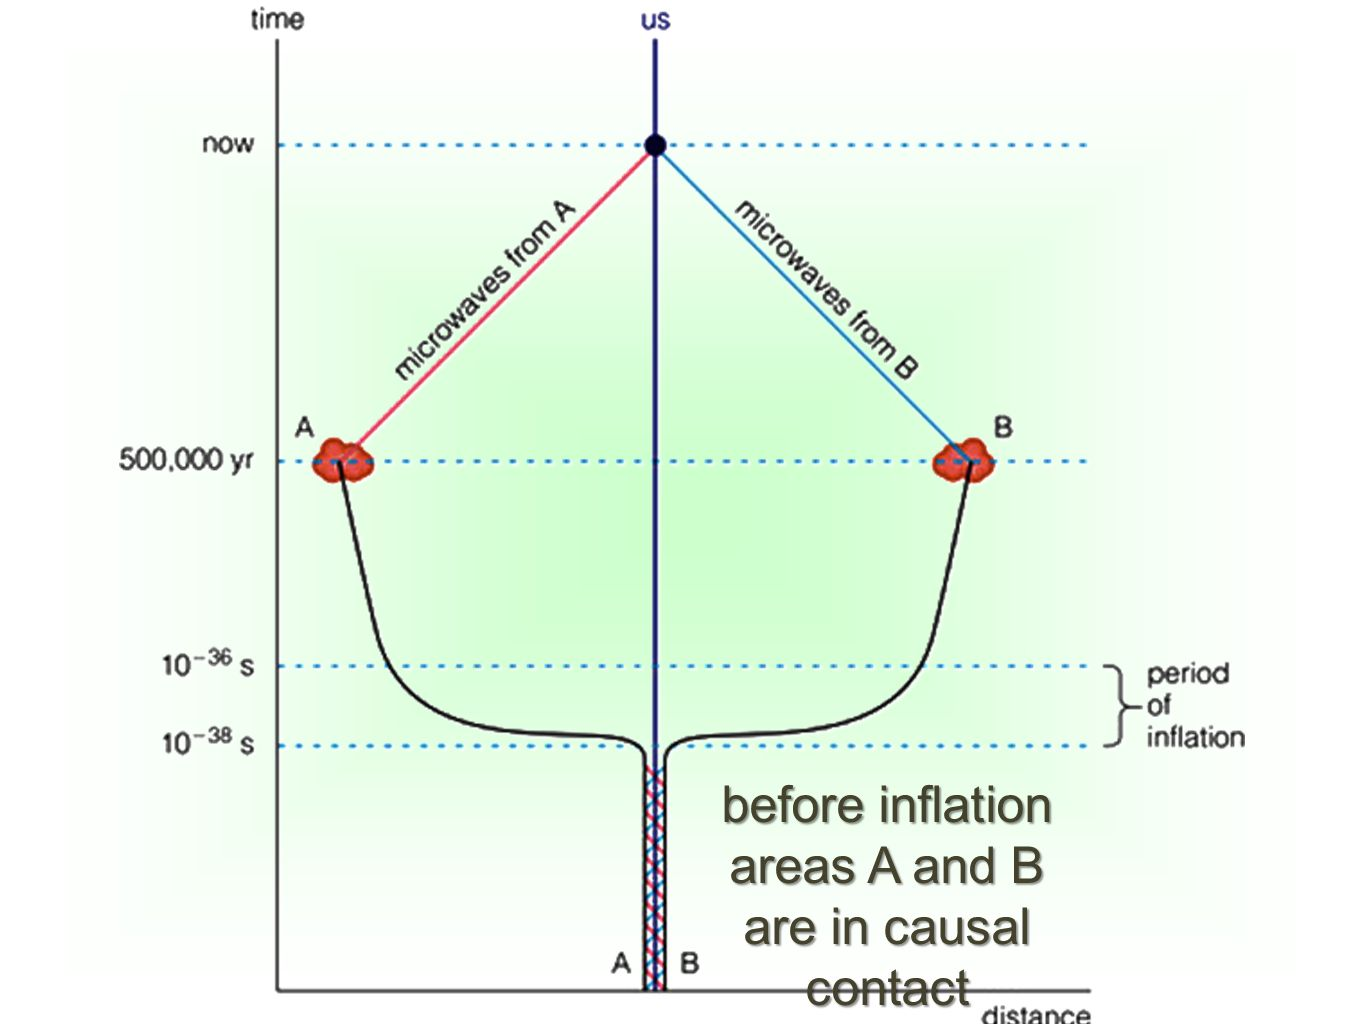 before inflation areas A and B are in causal contact